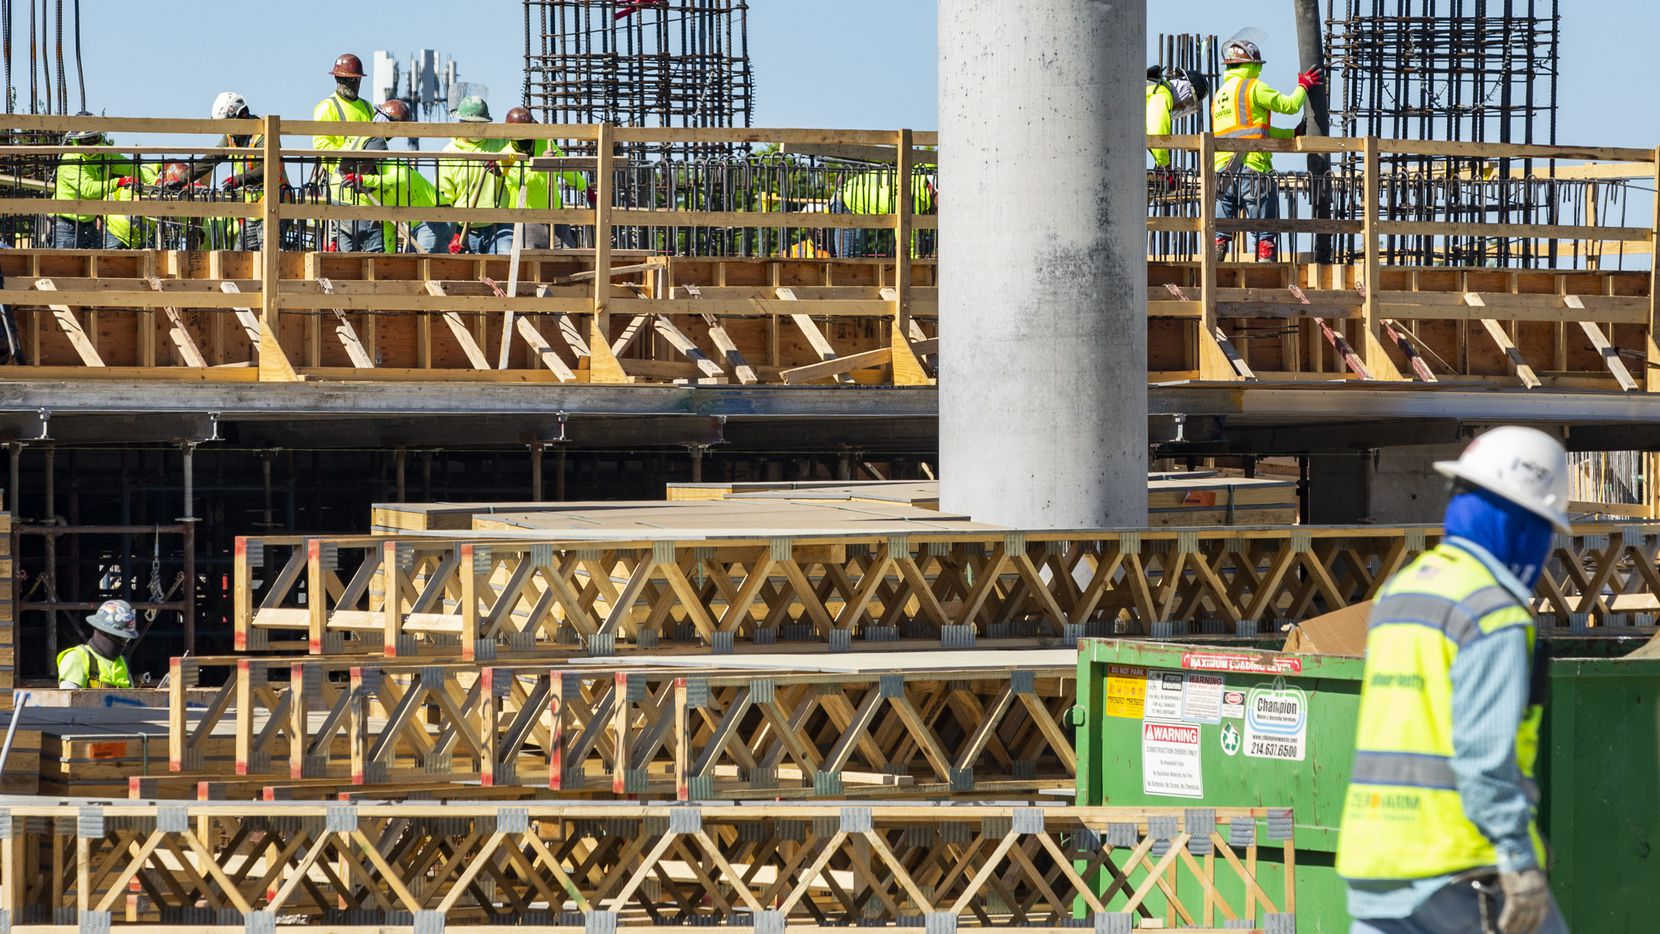 Construction personnel work on the Reata Tower on the southwest corner of Legacy Drive and Communications Parkway in Plano in June. Concerned residents who believe the city's Plano Tomorrow master plan has damaged the suburban feel of their community have been locked in litigation with Plano for almost five years.